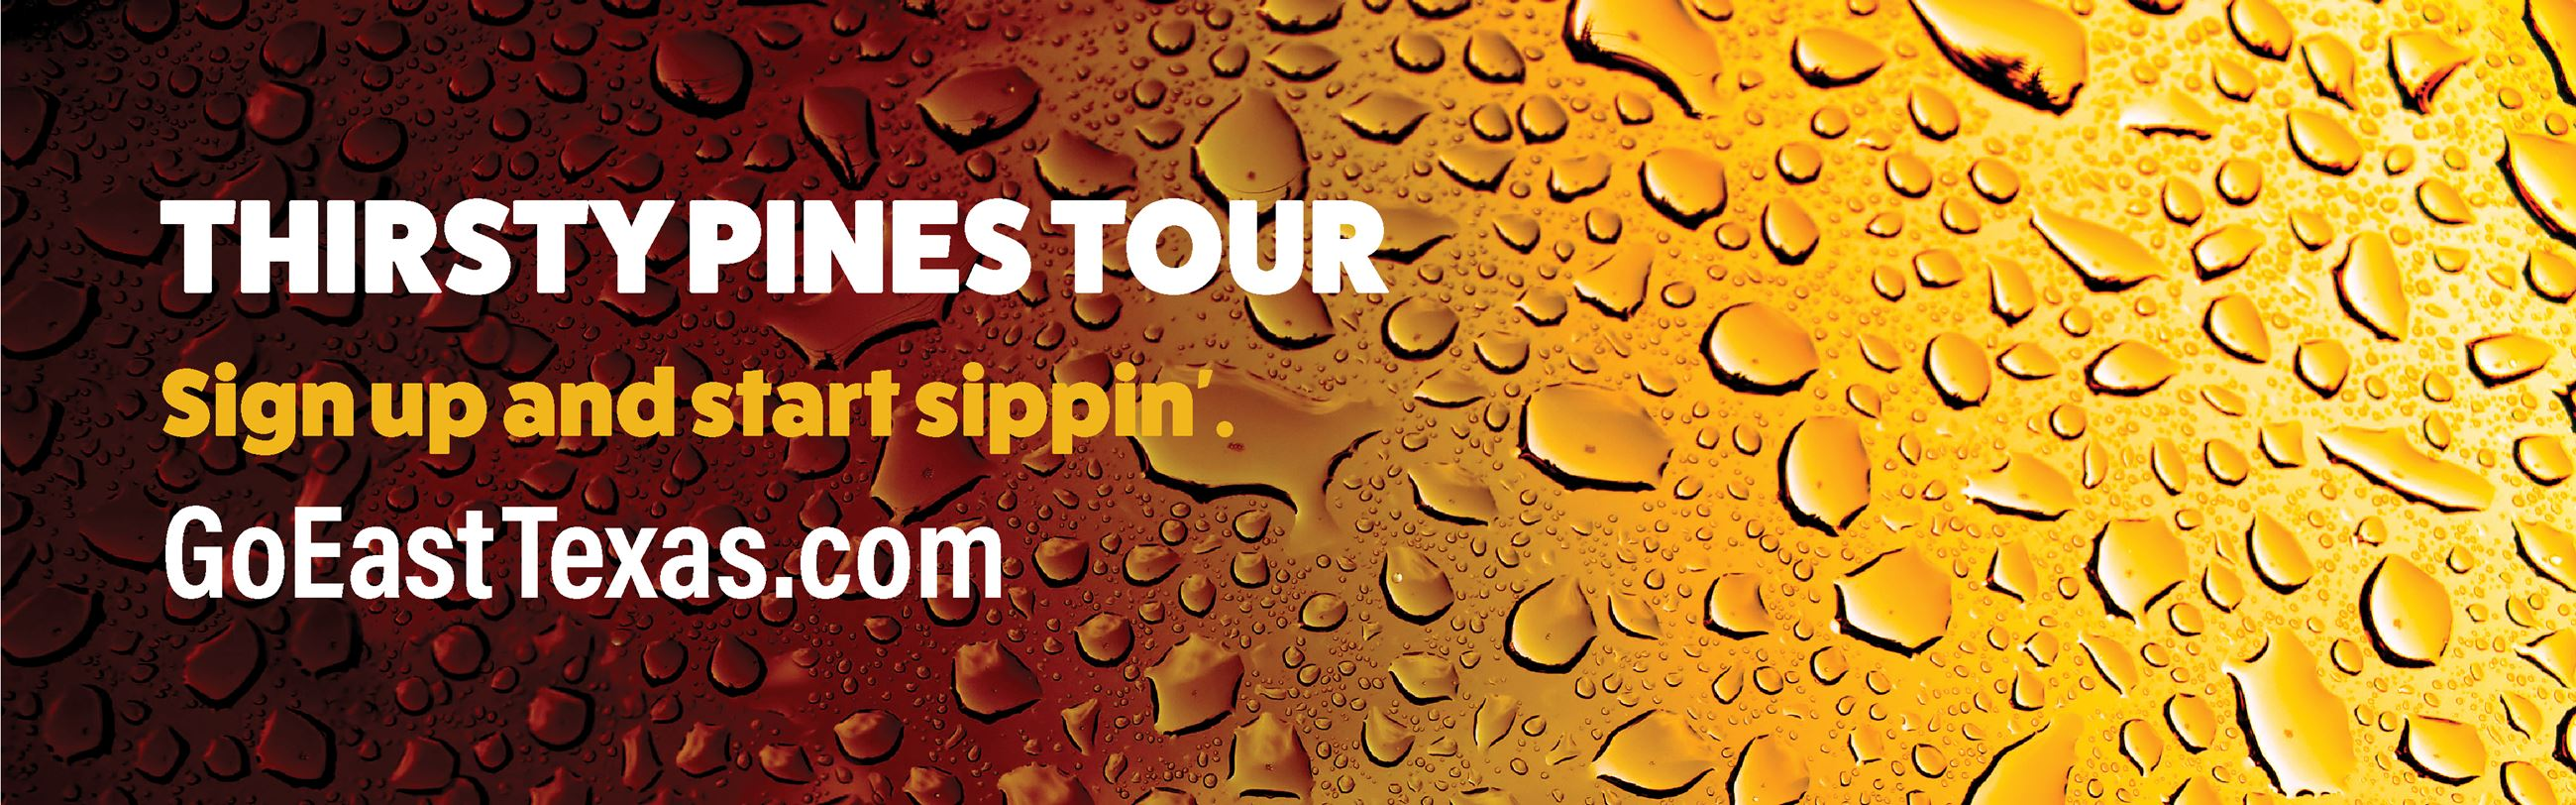 Thirsty Pines Tour Web Banner